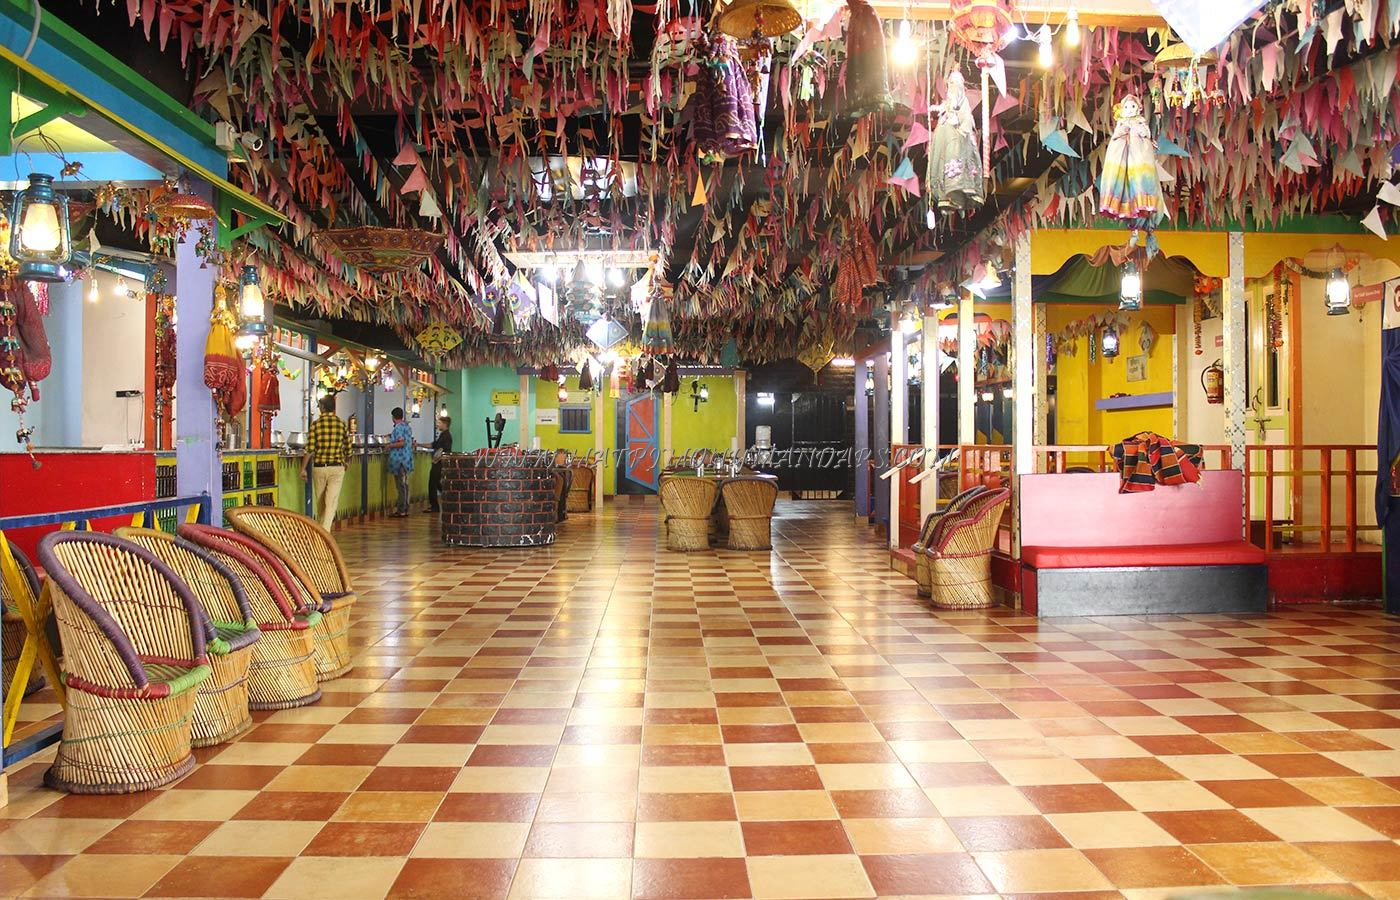 Find the availability of the Grand Village Banquet Hall (A/C) in Basavanagudi, Bangalore and avail special offers